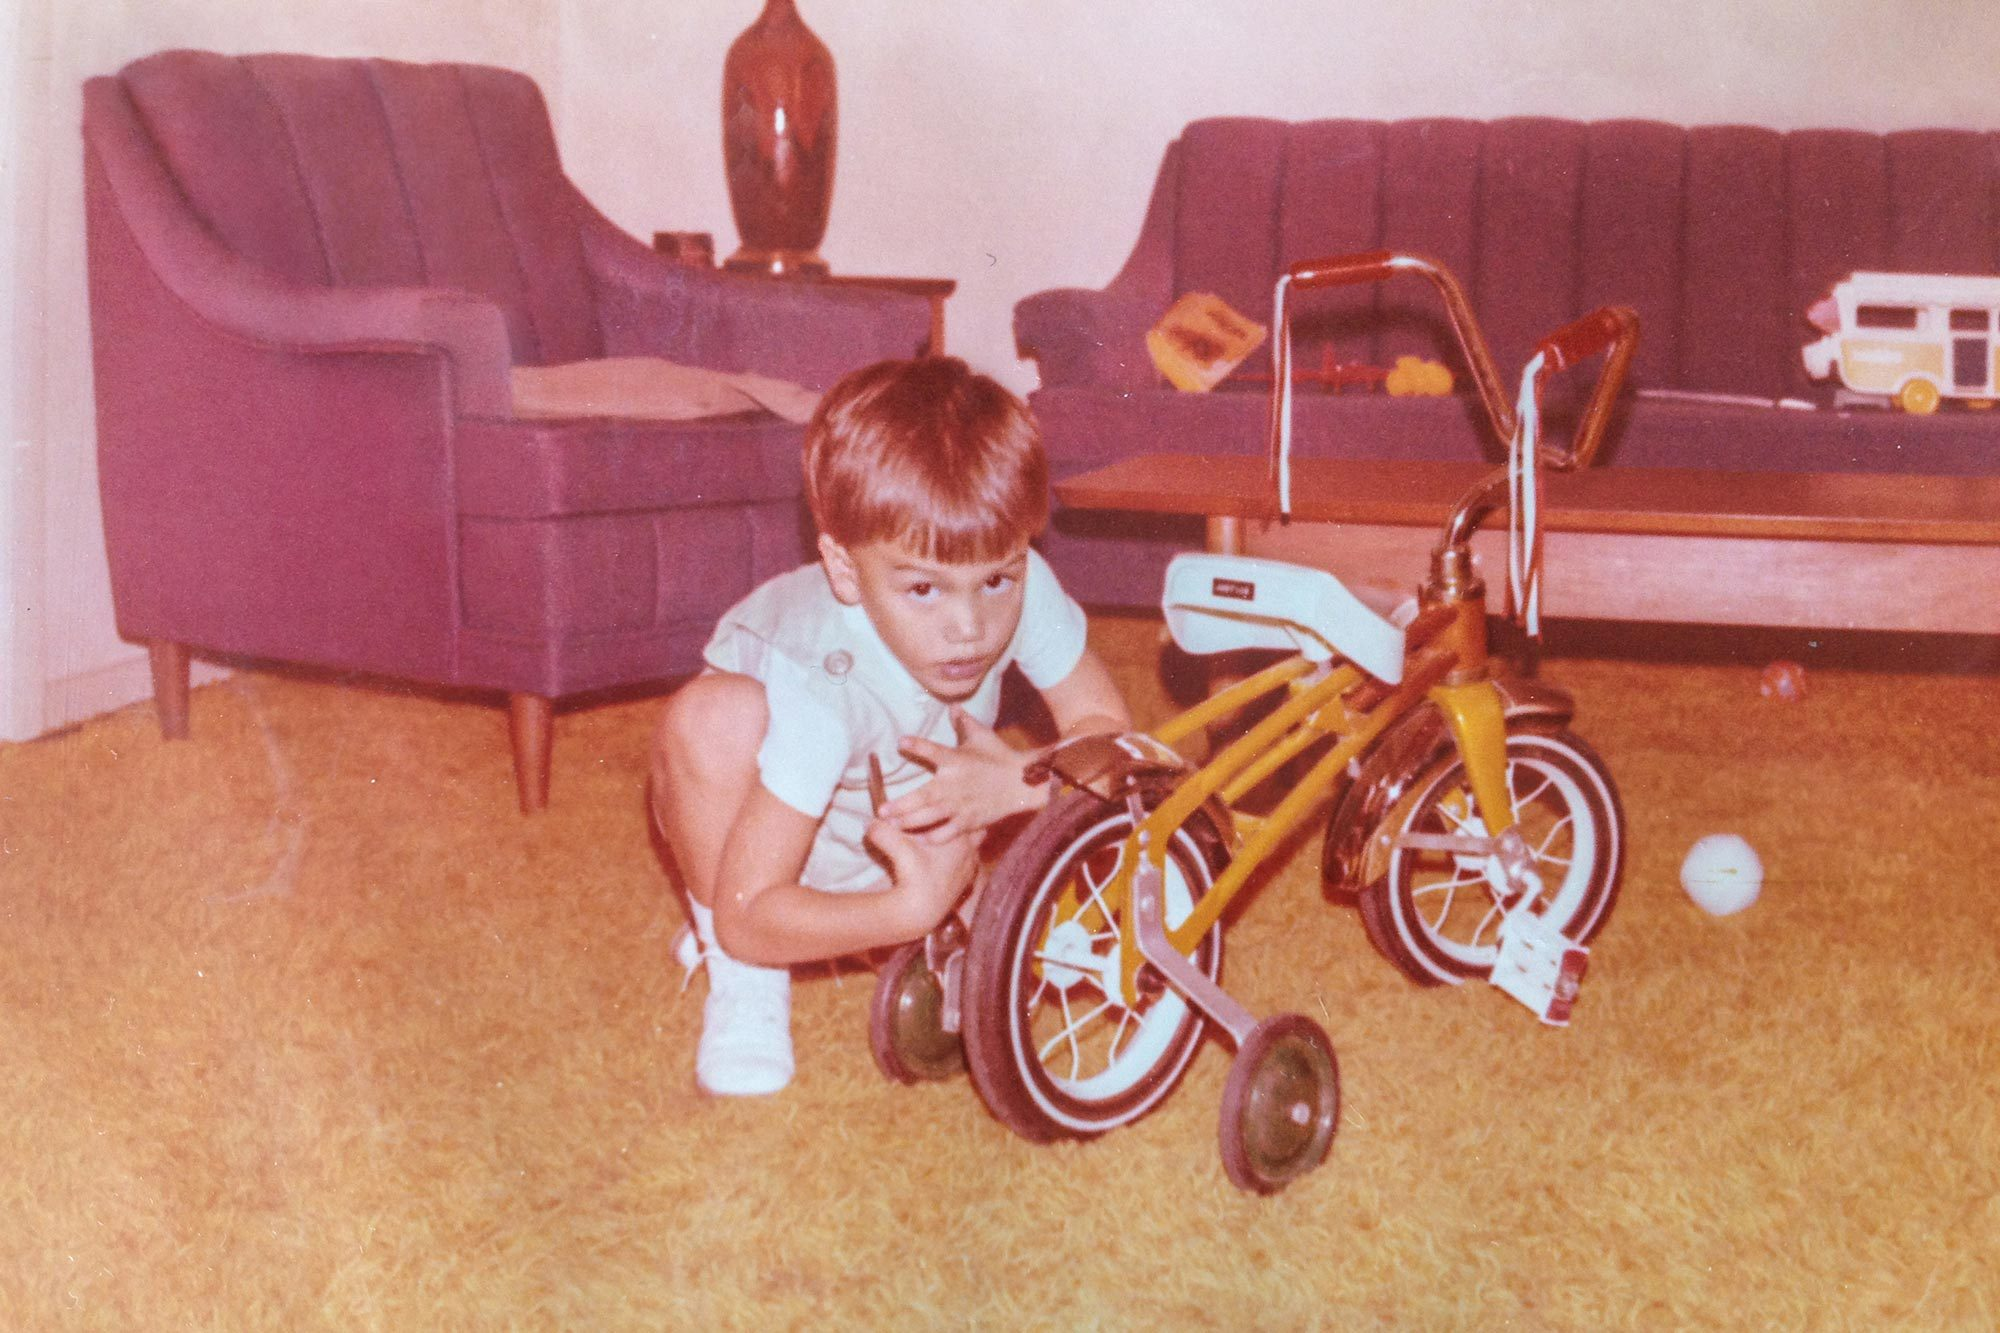 photo from Tom's childhood of him and his bike at the time with training wheels